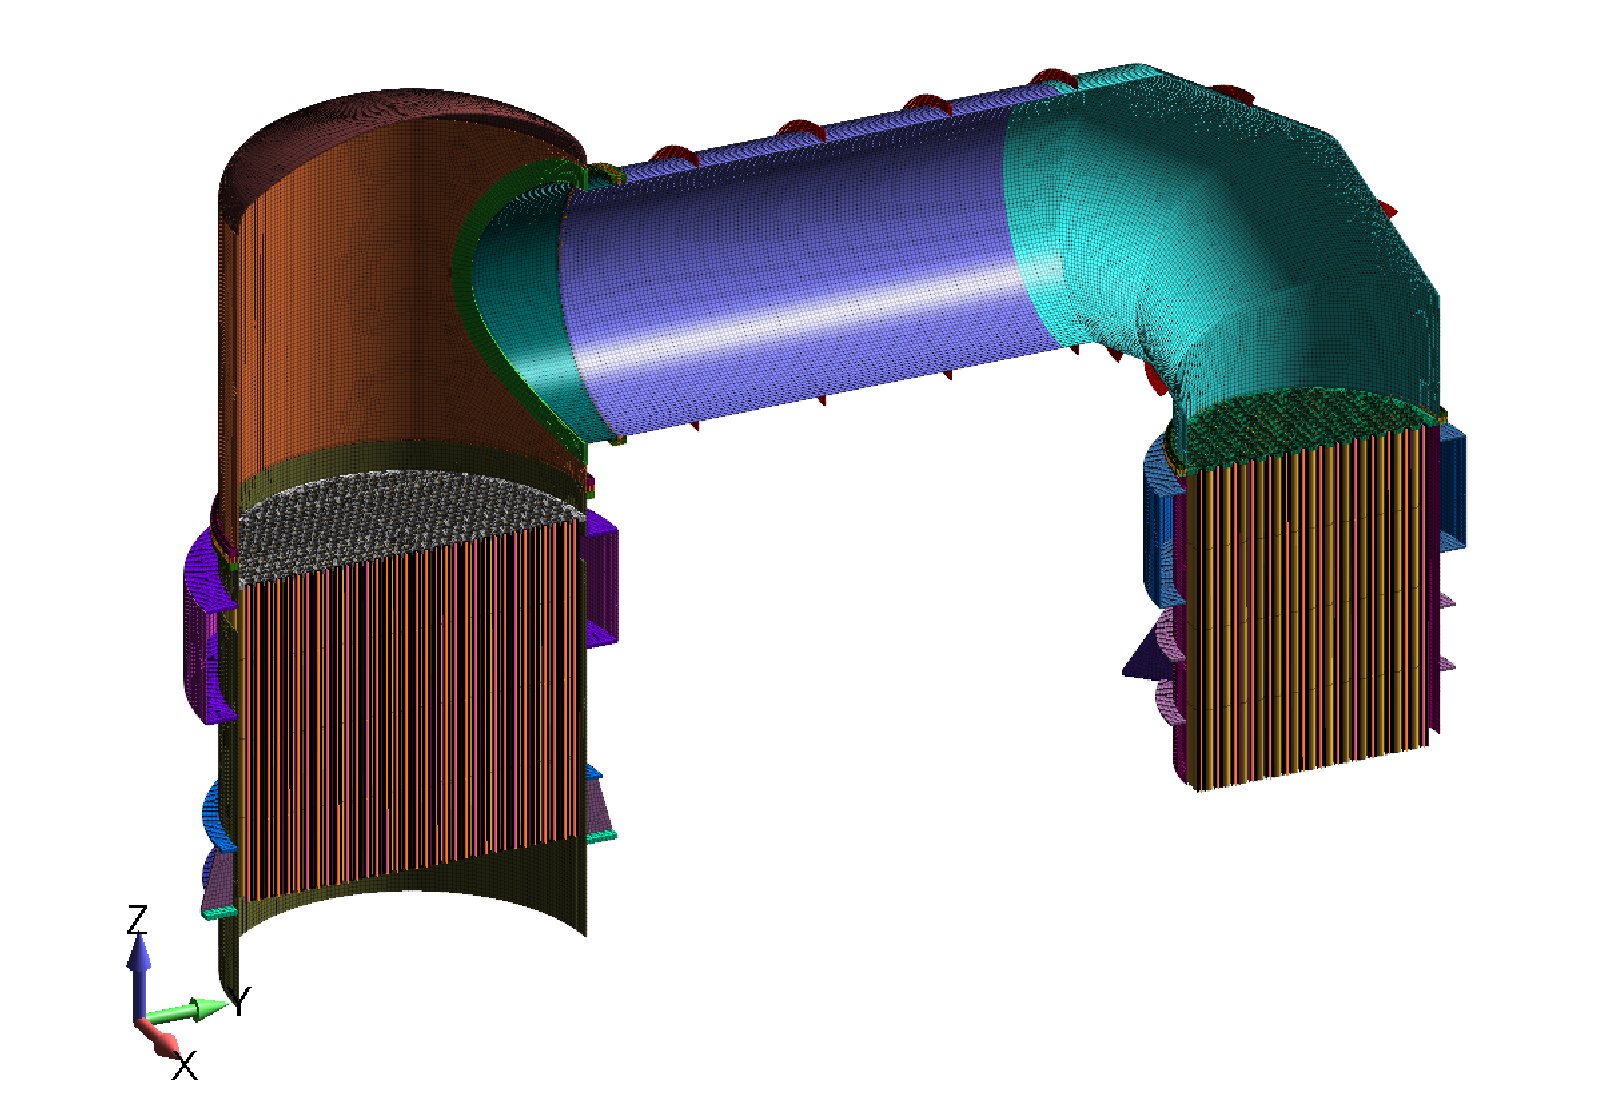 FEA model of Section VIII, Division 2 pressure-vessel condenser analysis - Predictive Engineering ASME BPVC Pressure Vessel Consulting Services